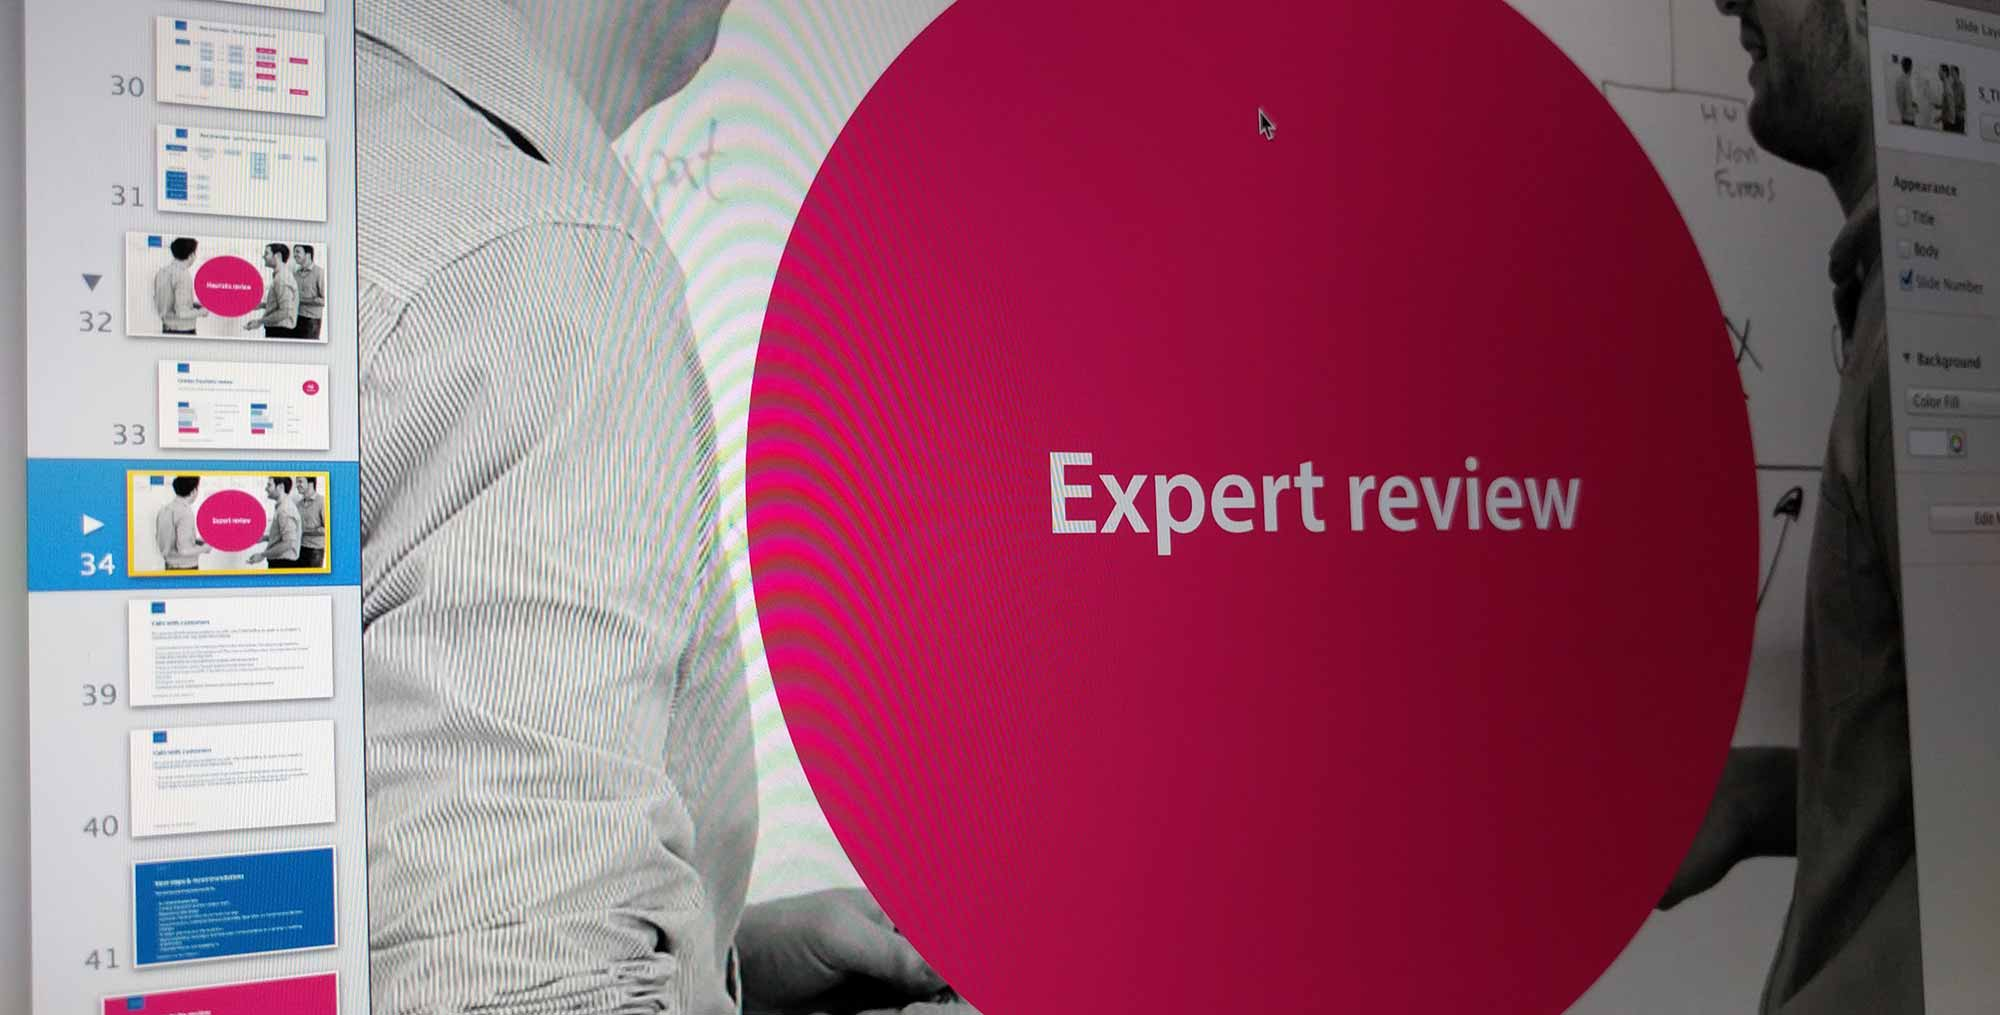 Expert review slides